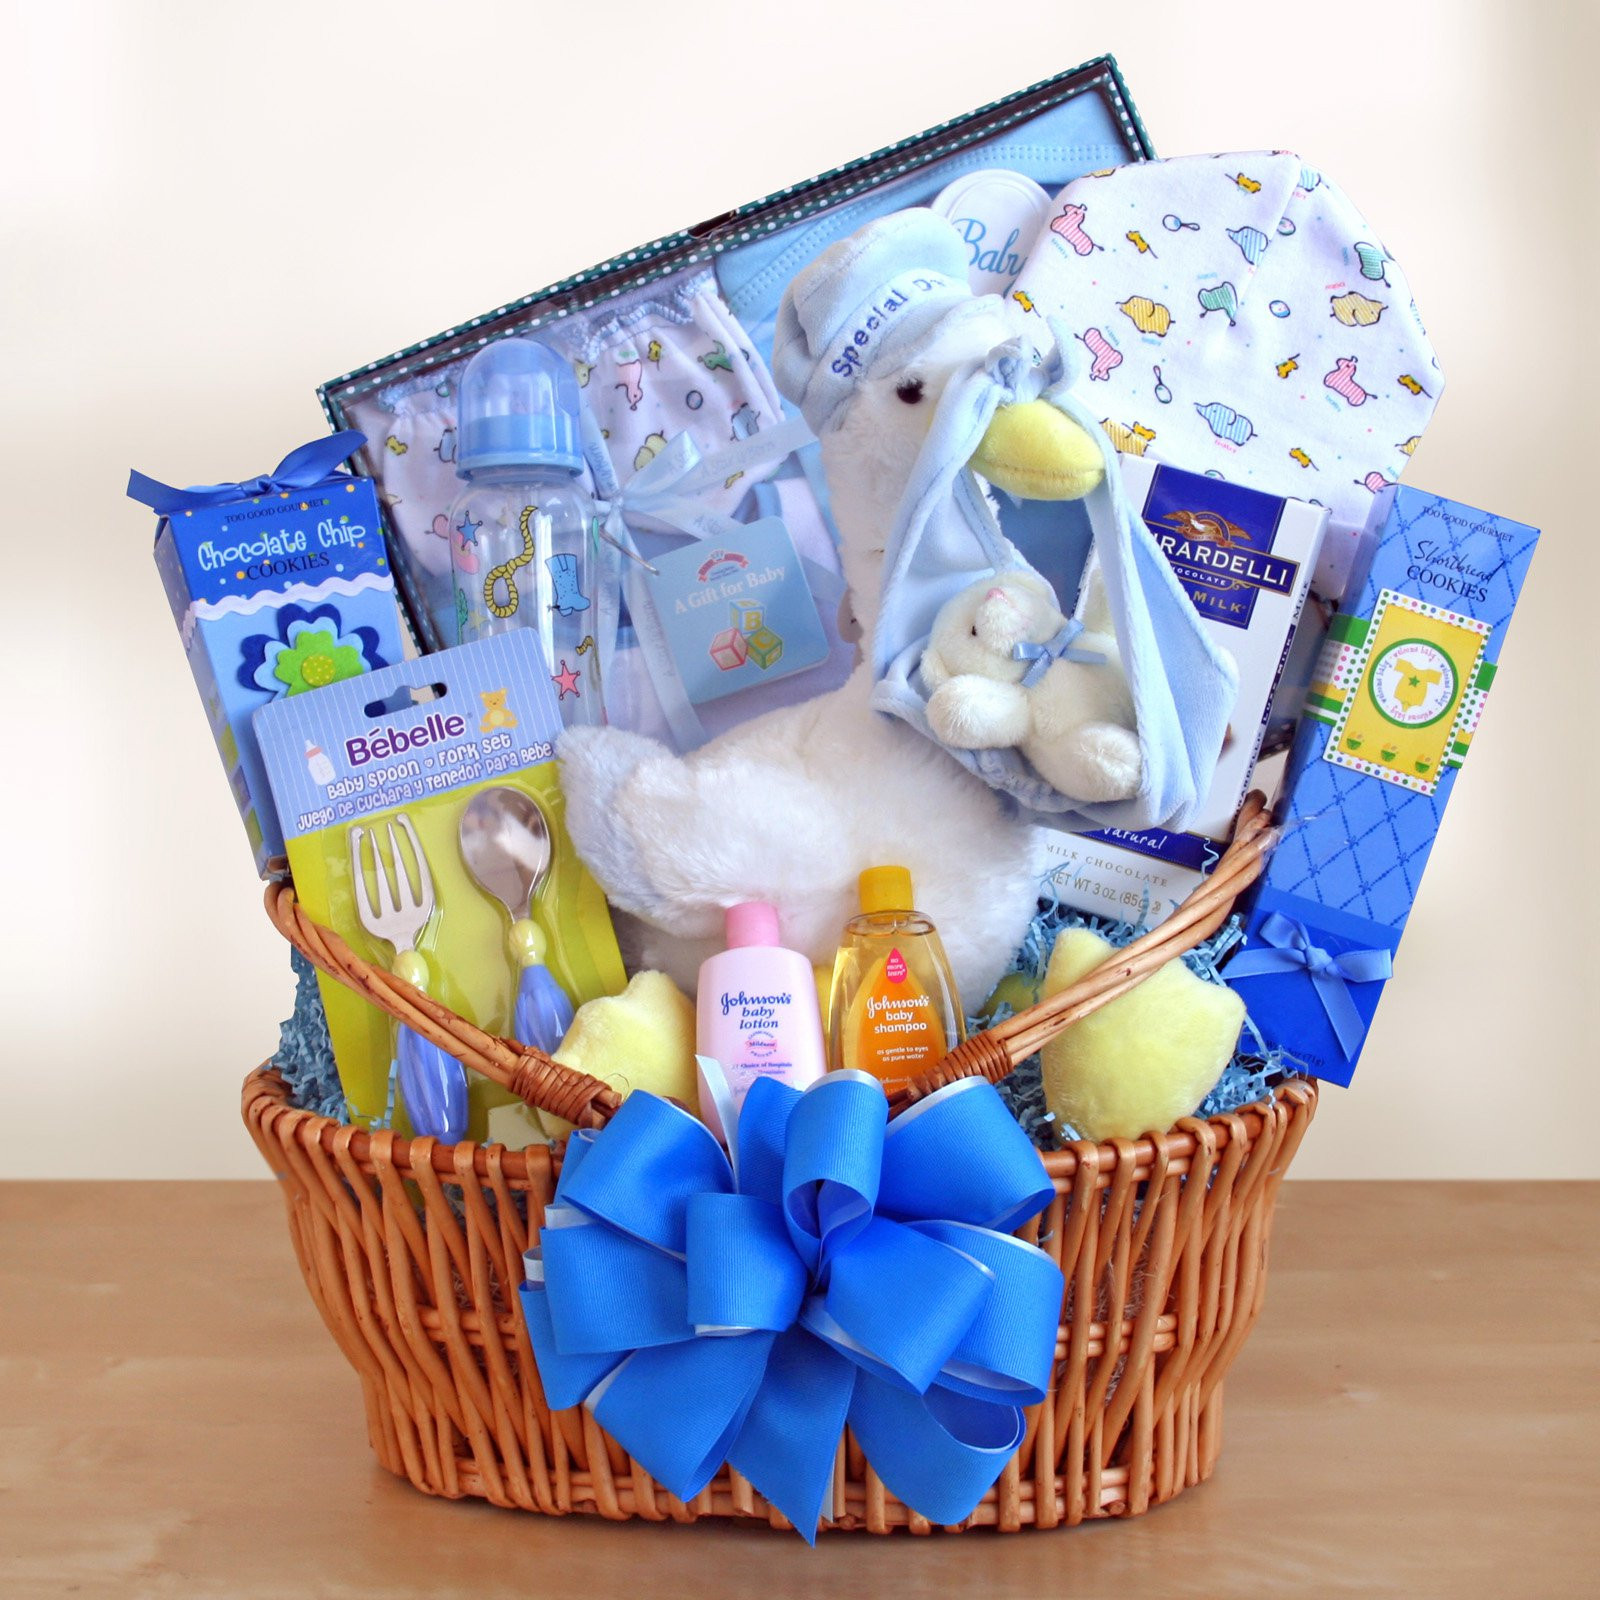 Best ideas about Cute Baby Boy Gift Ideas . Save or Pin Special Stork Delivery Baby Boy Gift Basket Gift Baskets Now.